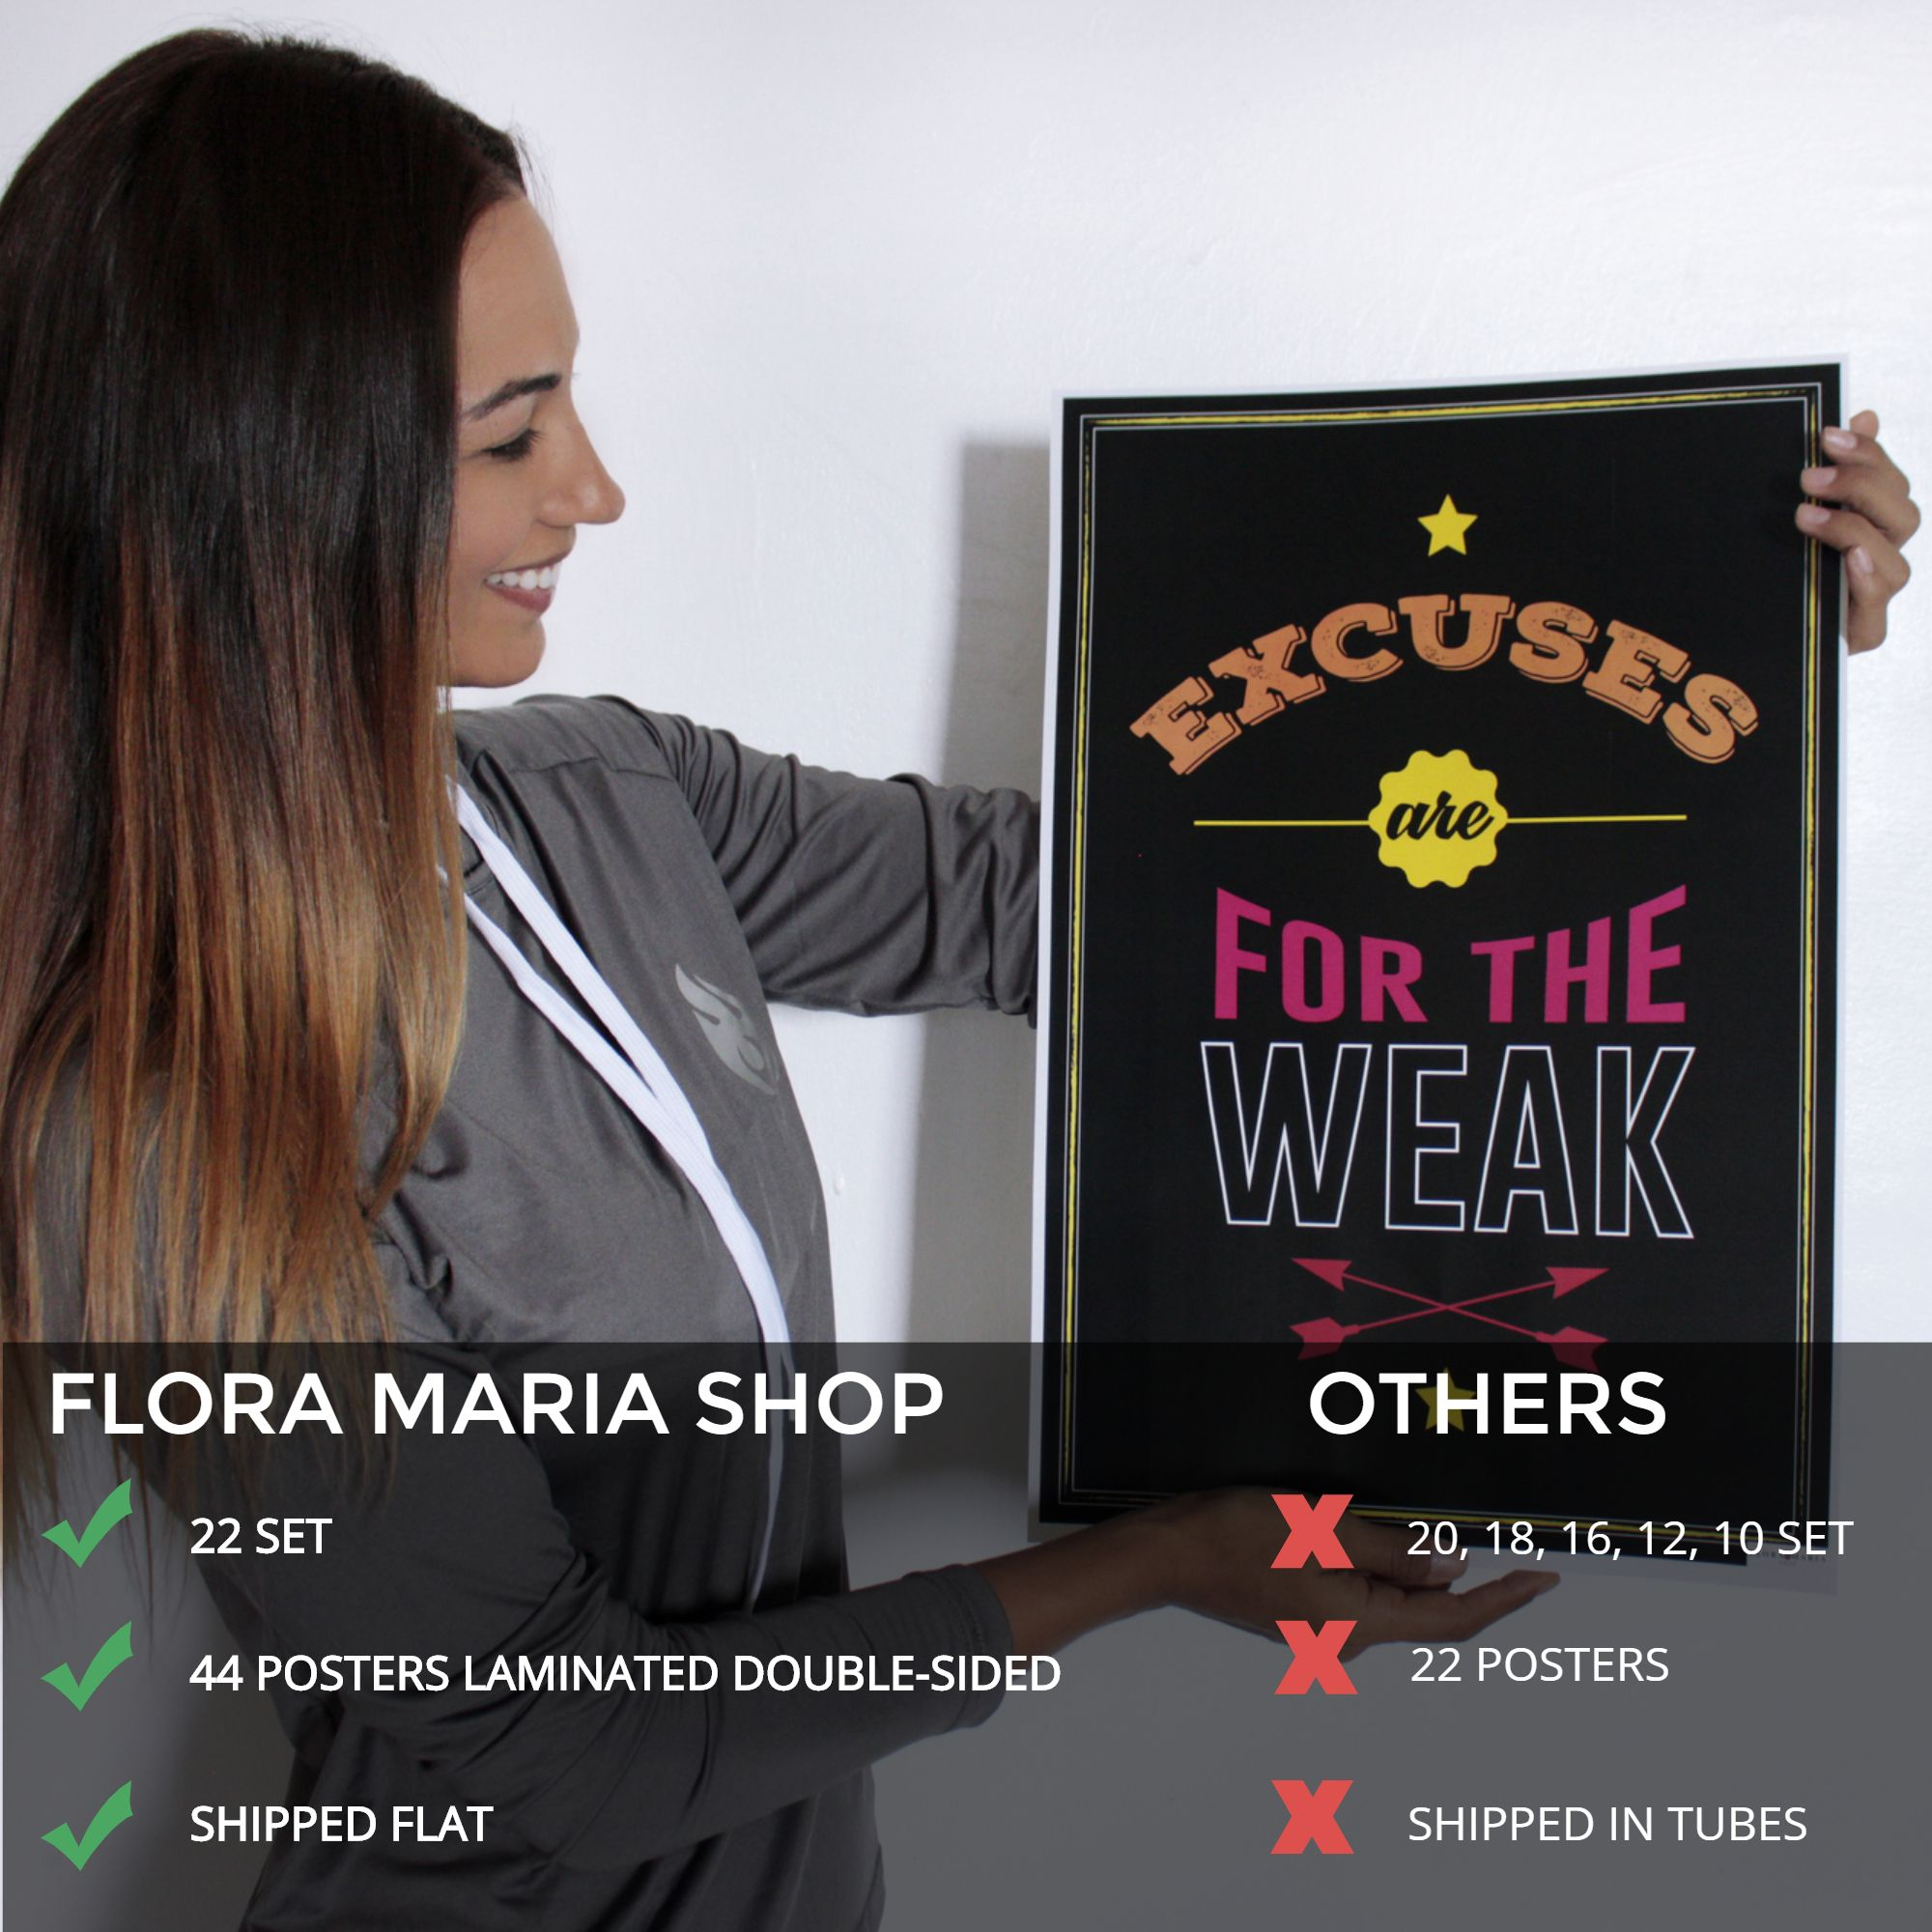 Excuses Are For The Weak Motivational Posters Motivation Poster